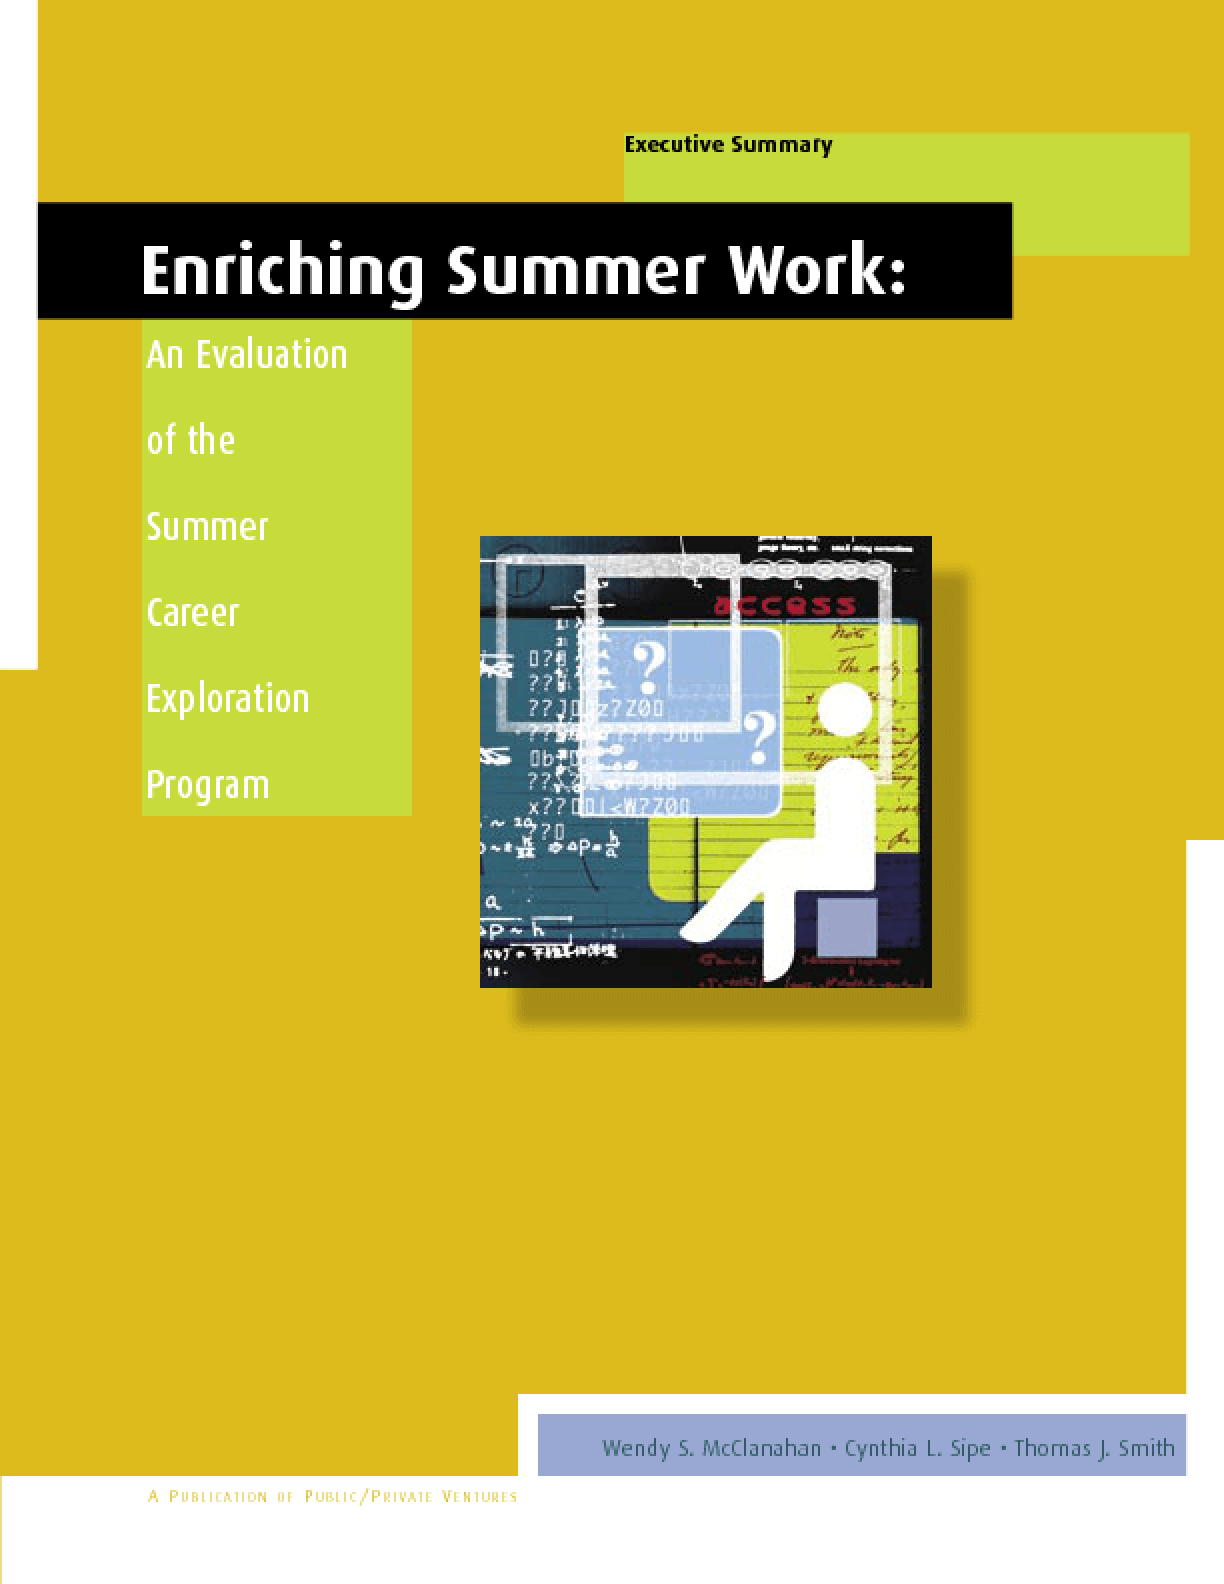 Enriching Summer Work: An Evaluation of the Summer Career Exploration Program (Executive Summary)